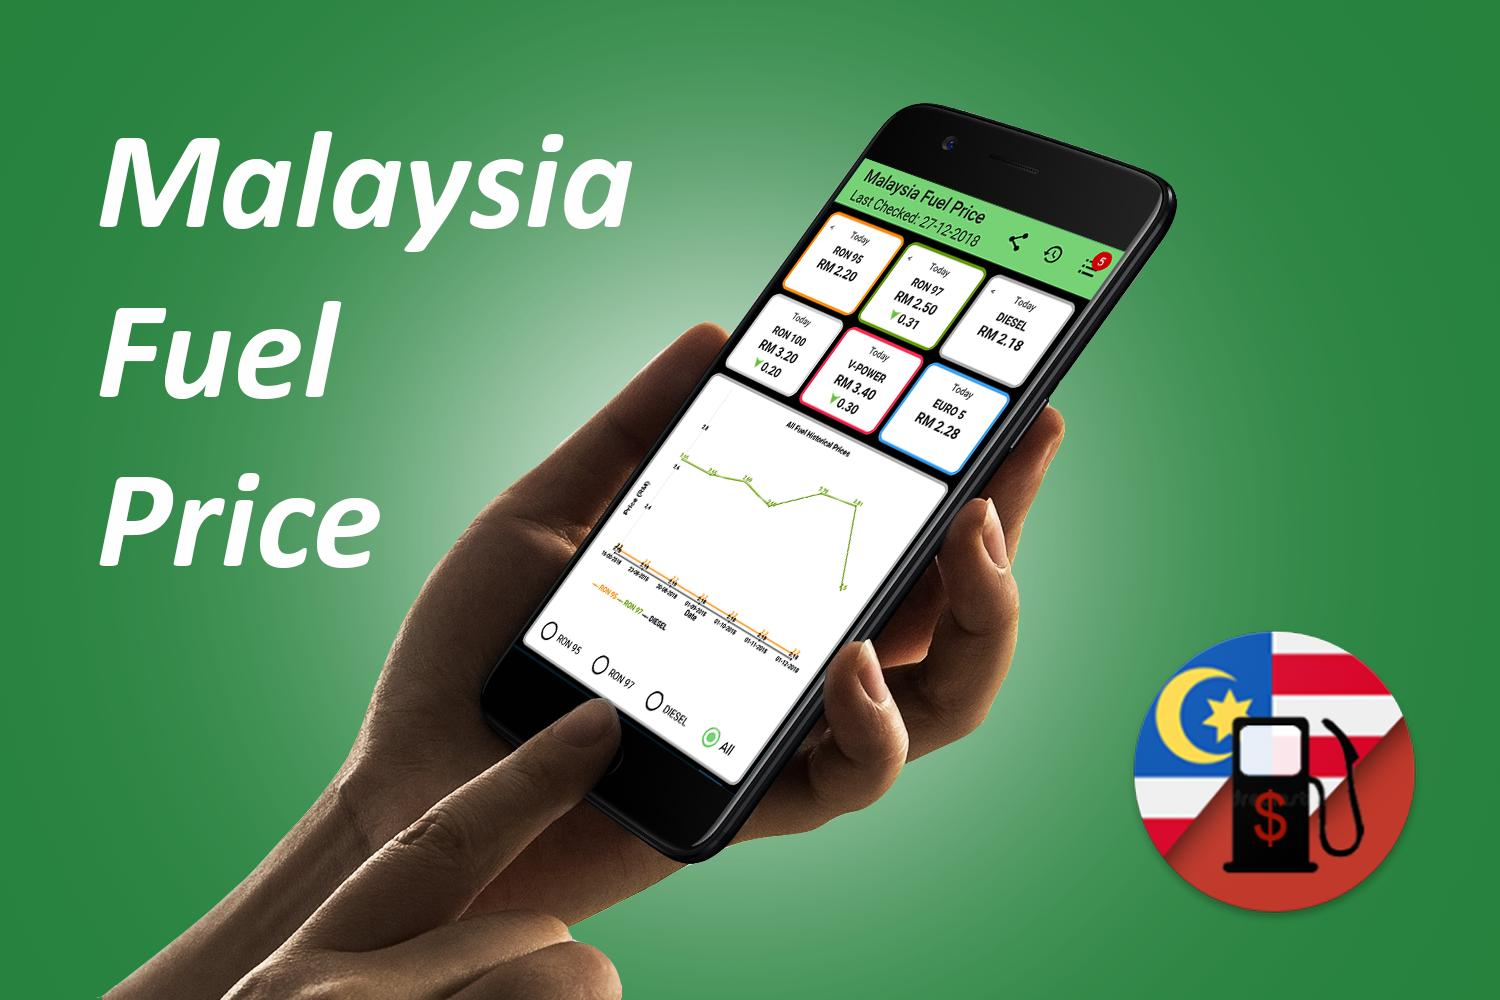 db66dee6c4eb4c Malaysia Fuel Price for Android - APK Download